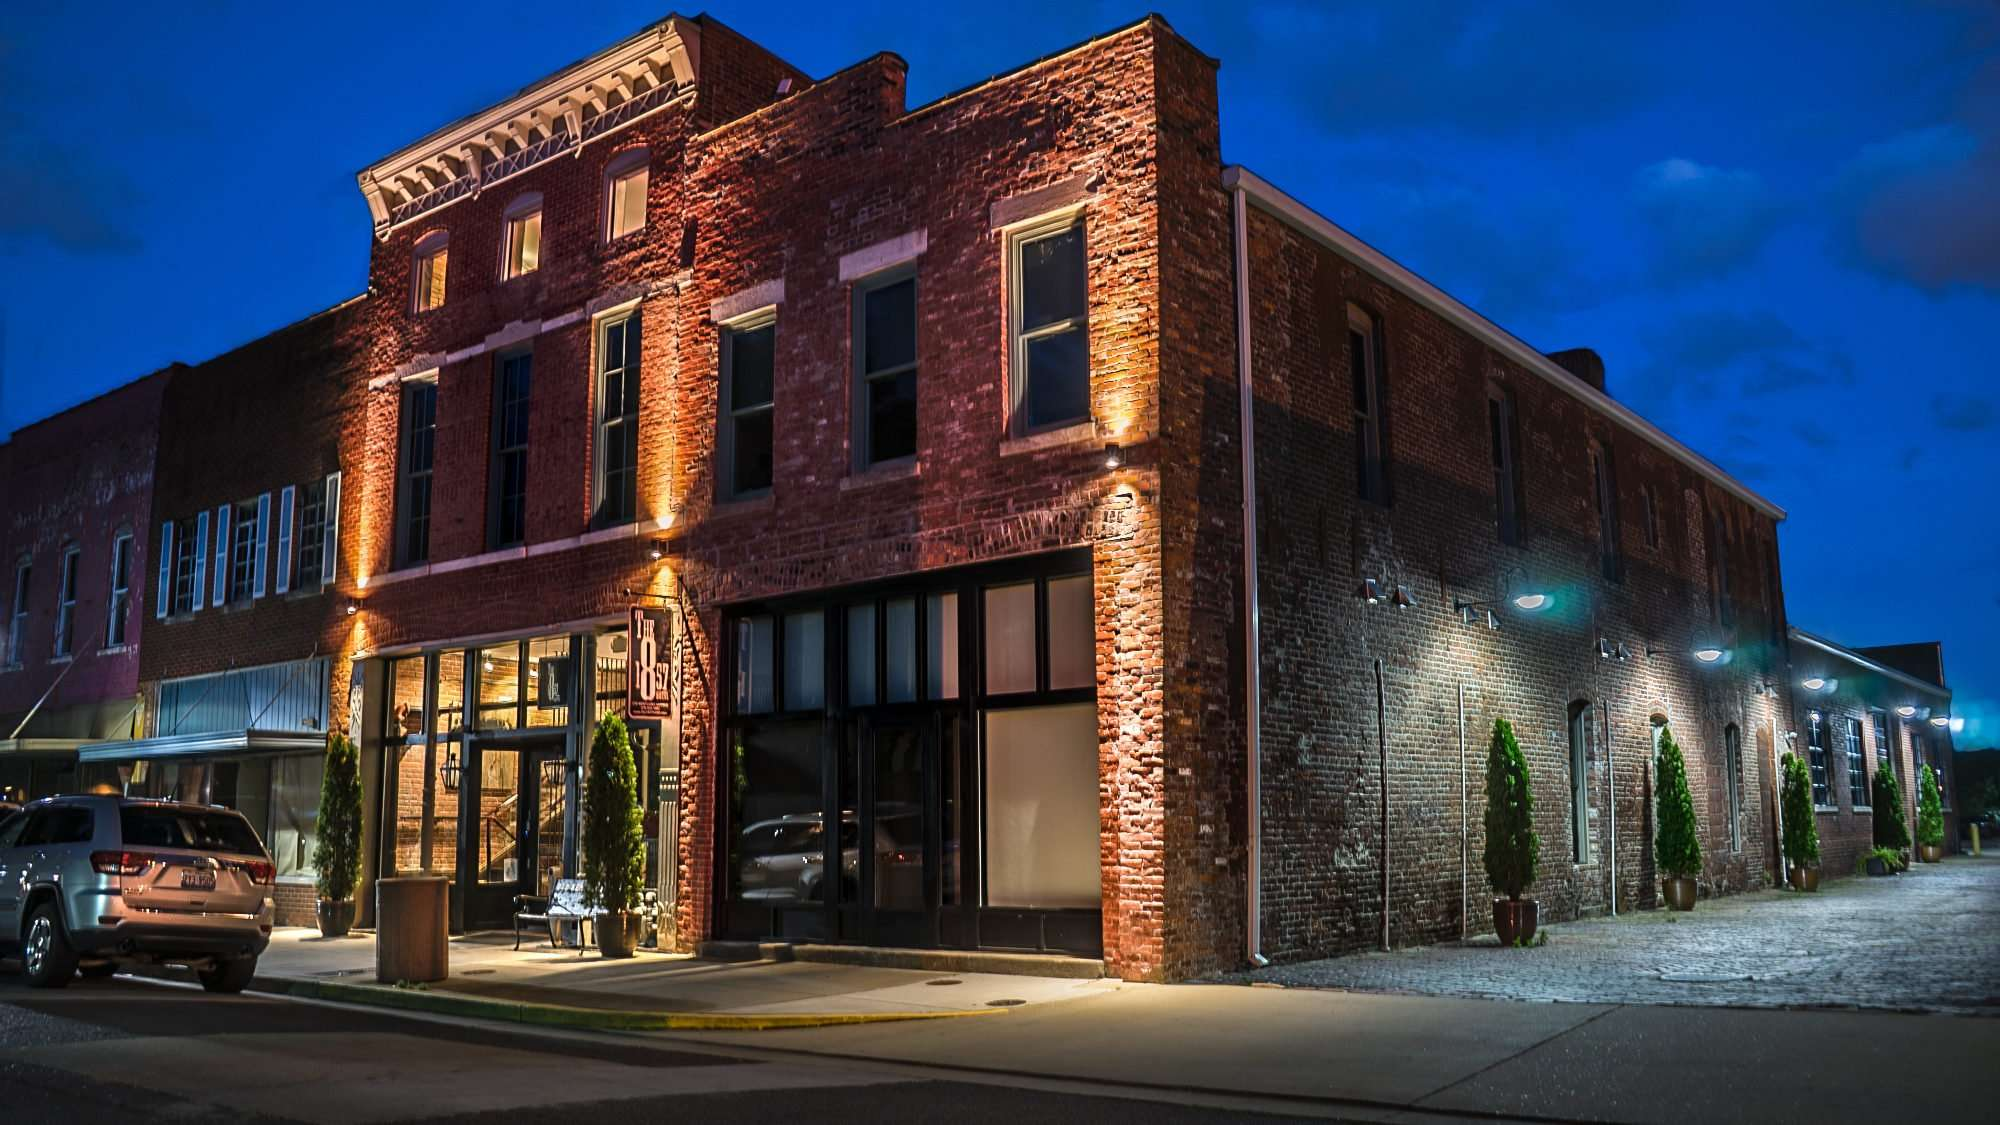 May 21, 2017 - 1857 Hotel is a Boutique hotel in historic downtown Paducah KY/photonews247.com